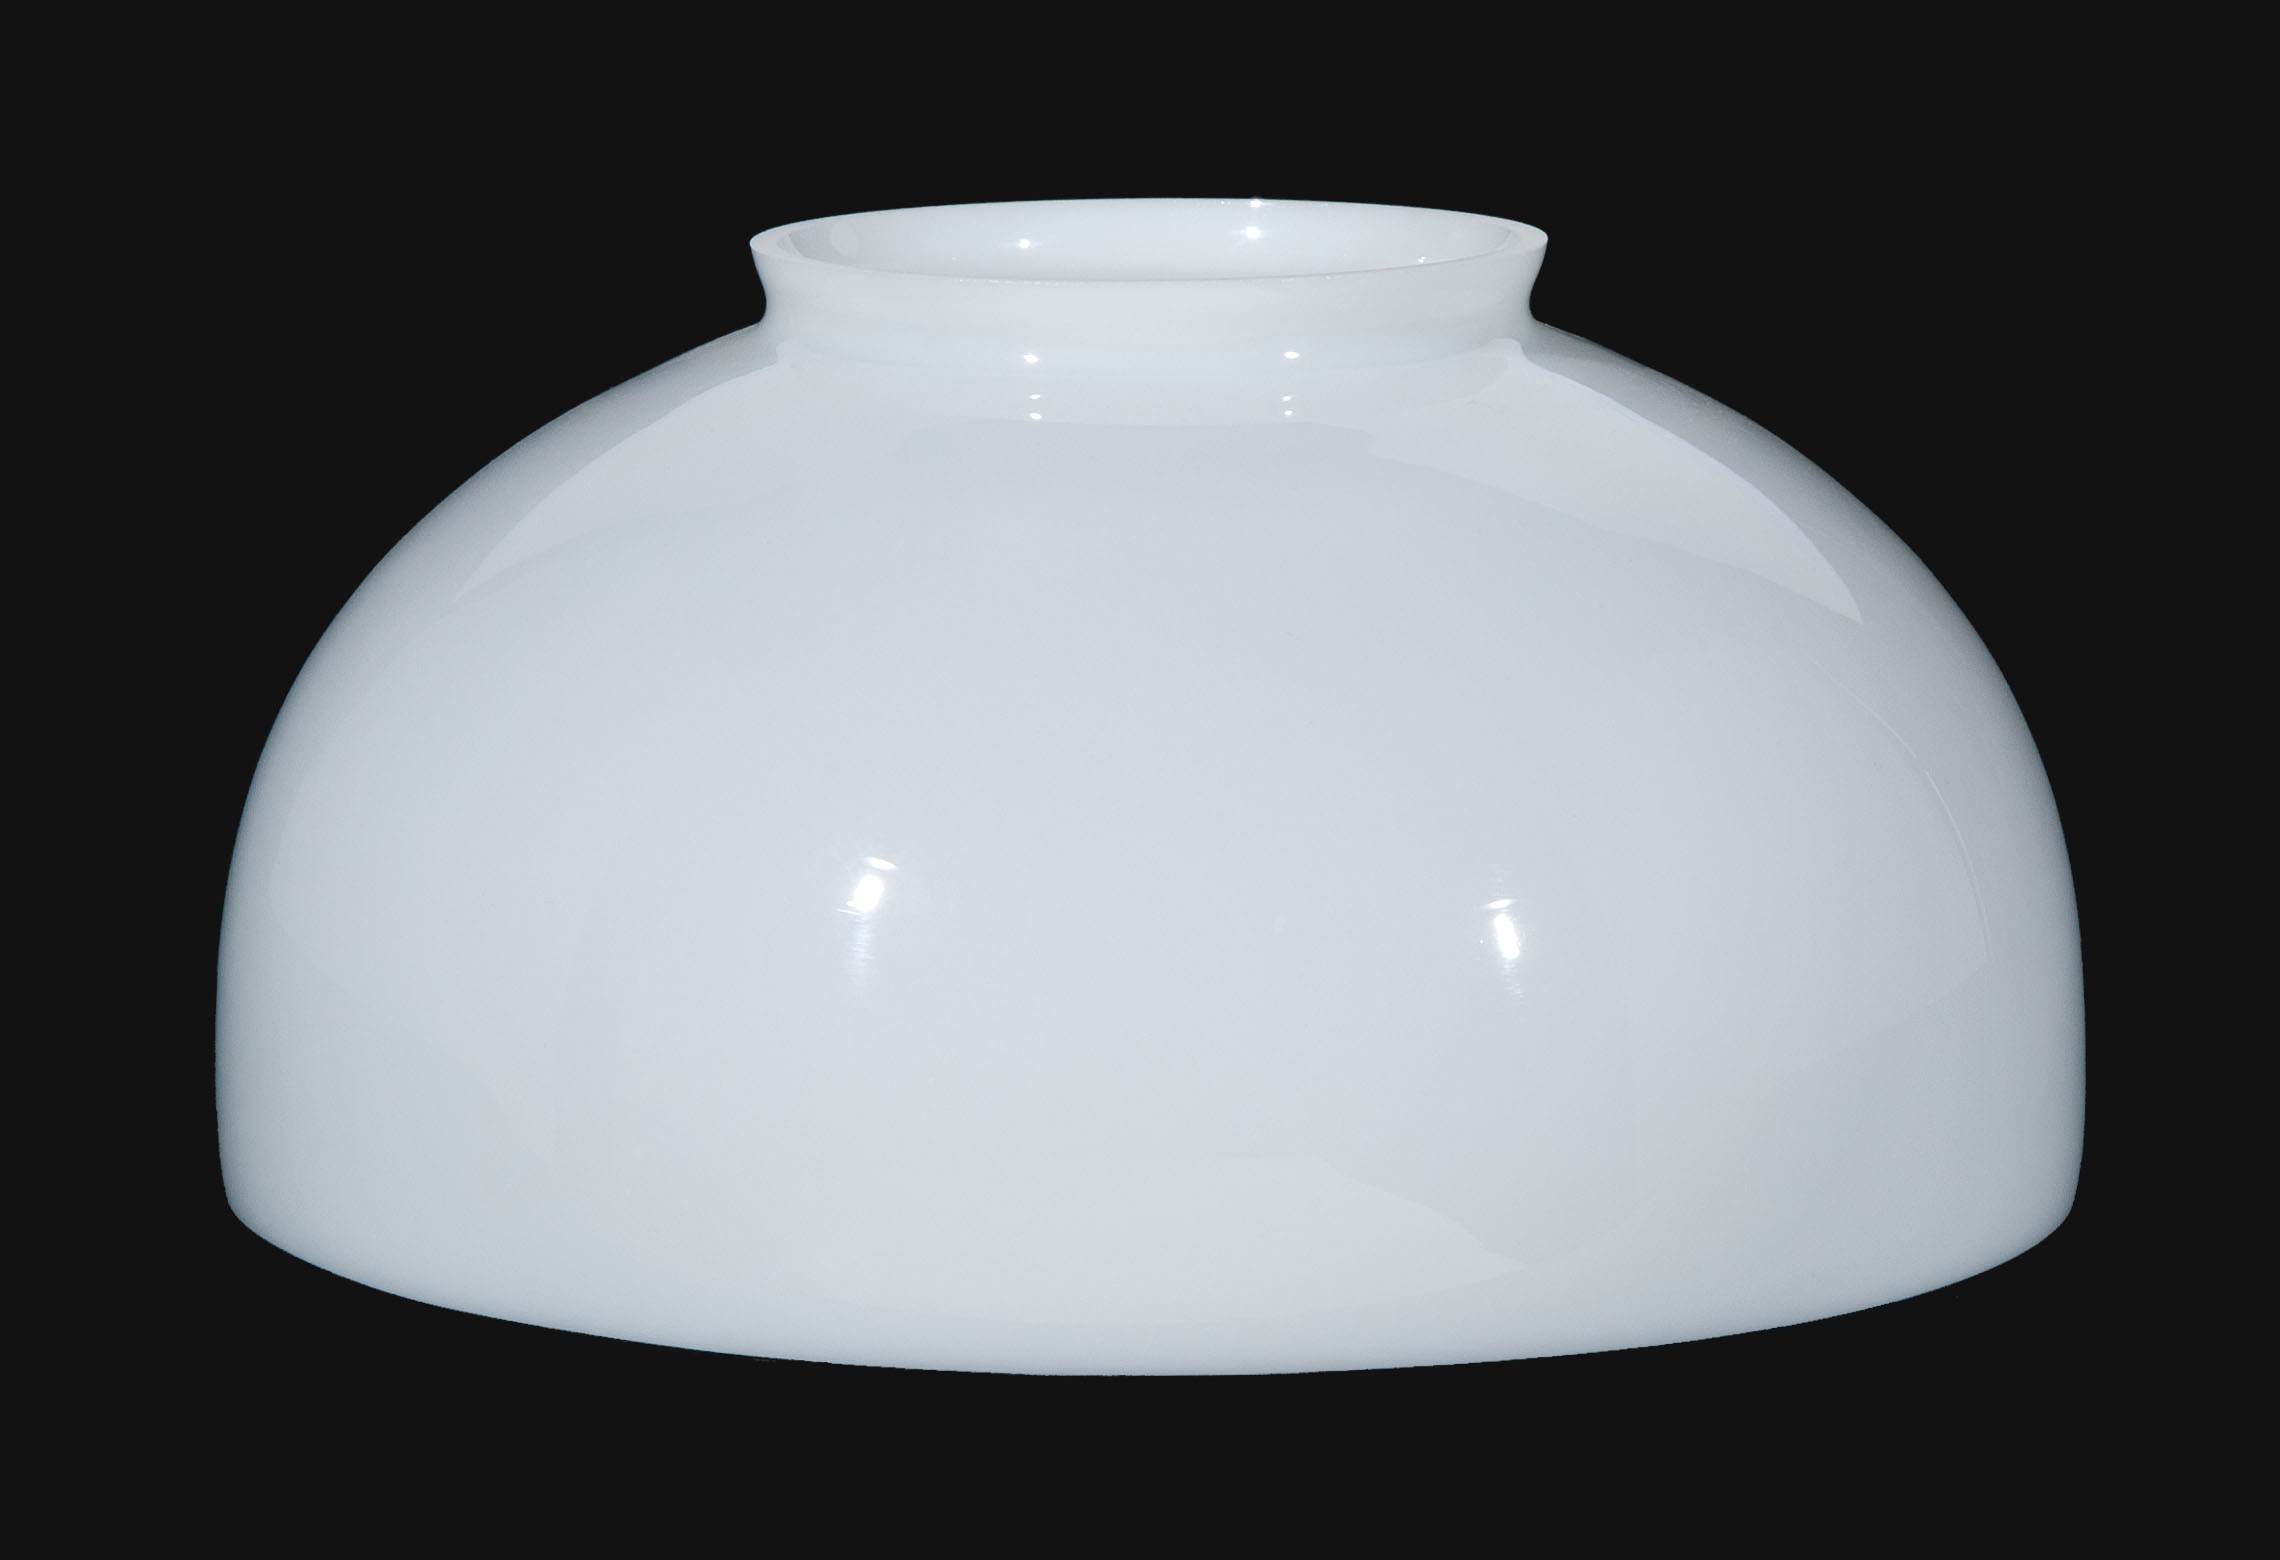 14 usa made opal glass dome shade 08000 bp lamp supply for 7 inch table lamp shades